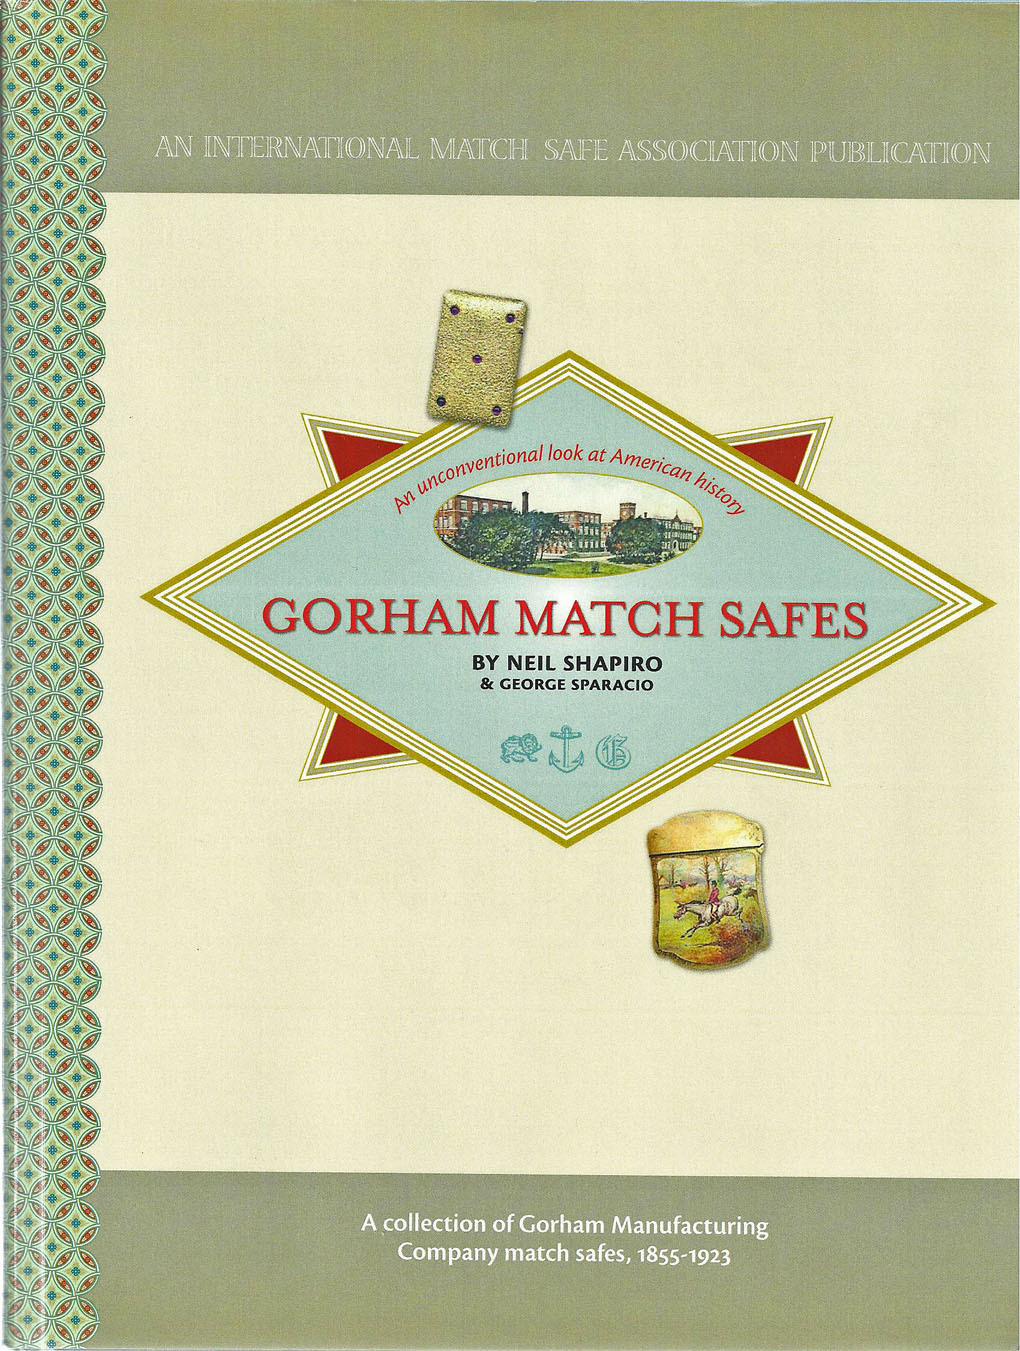 Gorham Match Safes book with CD by Shapiro & Sparacio